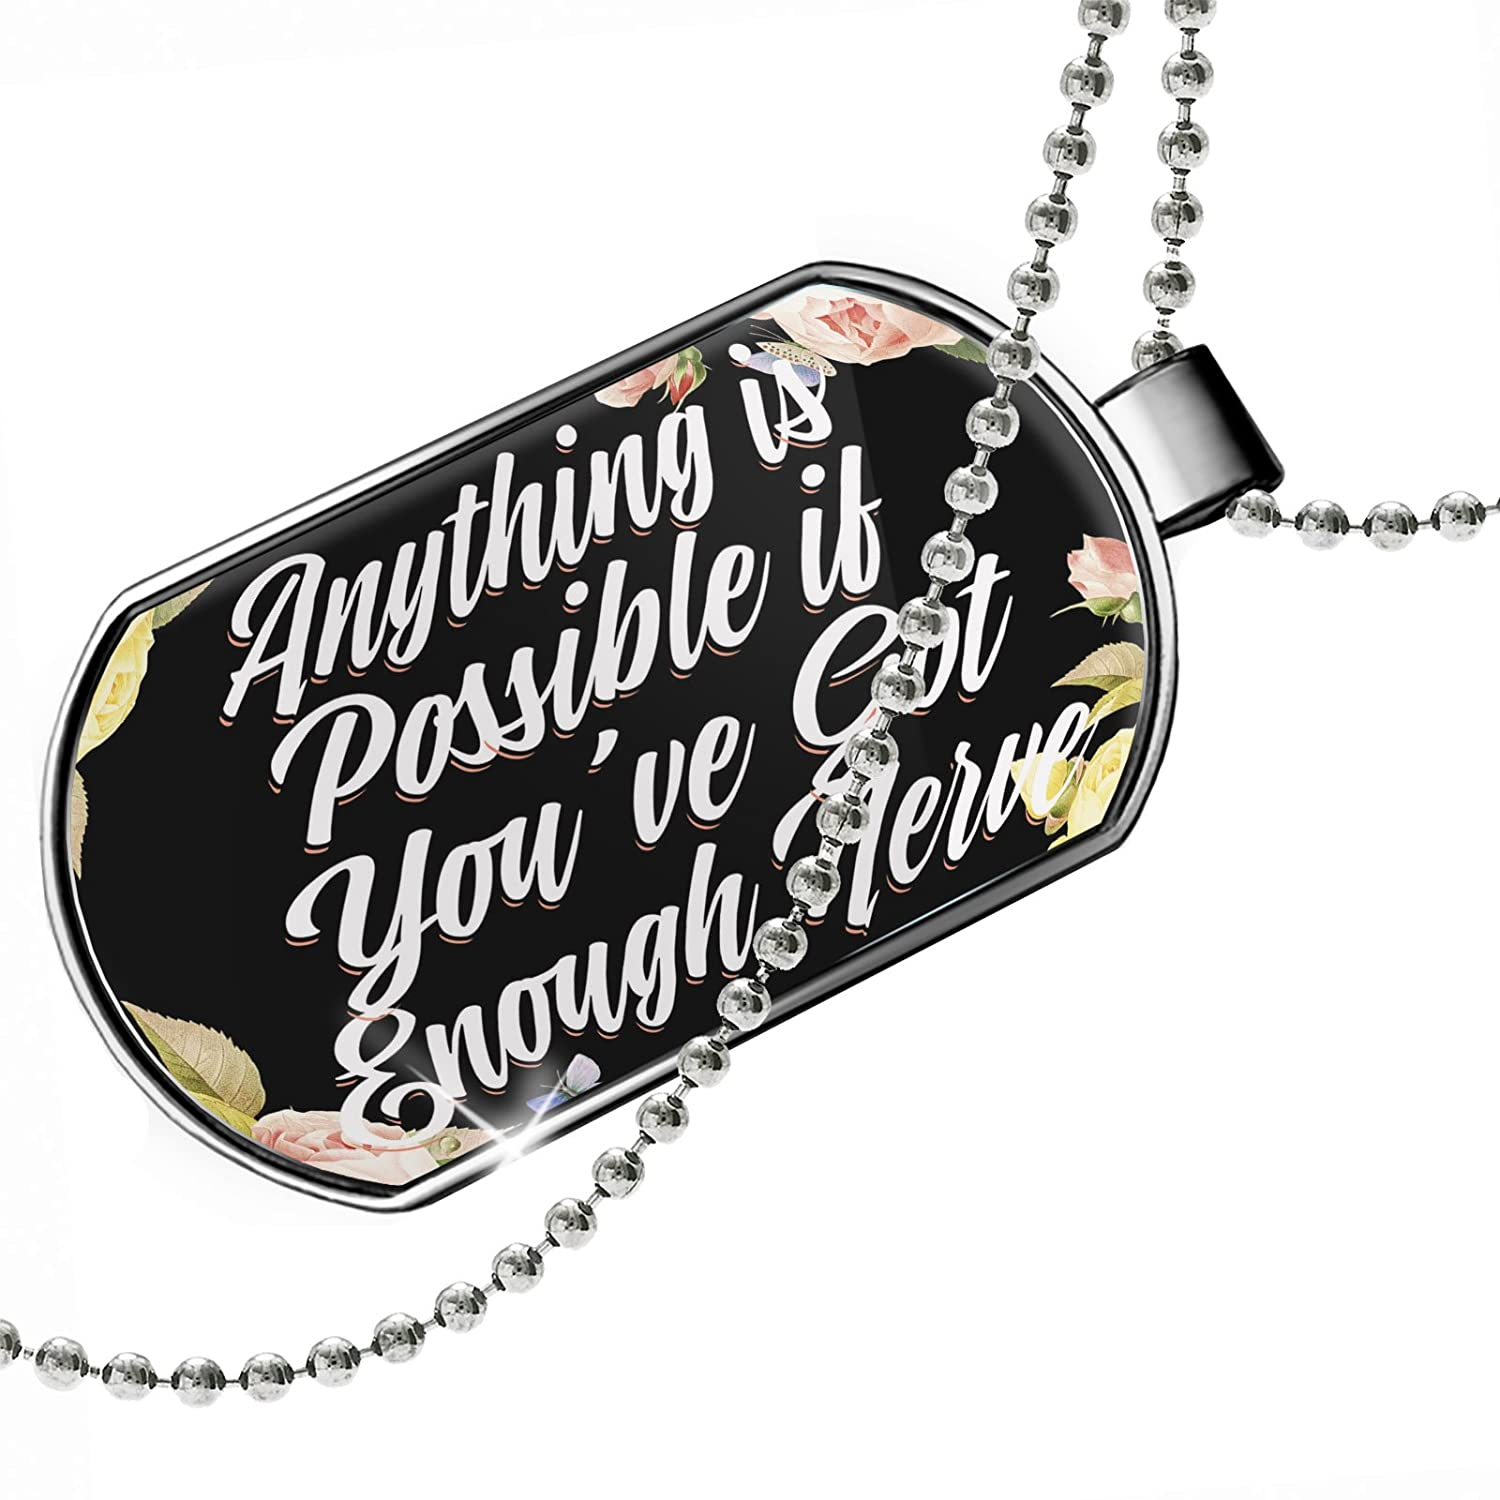 NEONBLOND Personalized Name Engraved Floral Border Anything is Possible if Youve Got Enough Nerve Dogtag Necklace